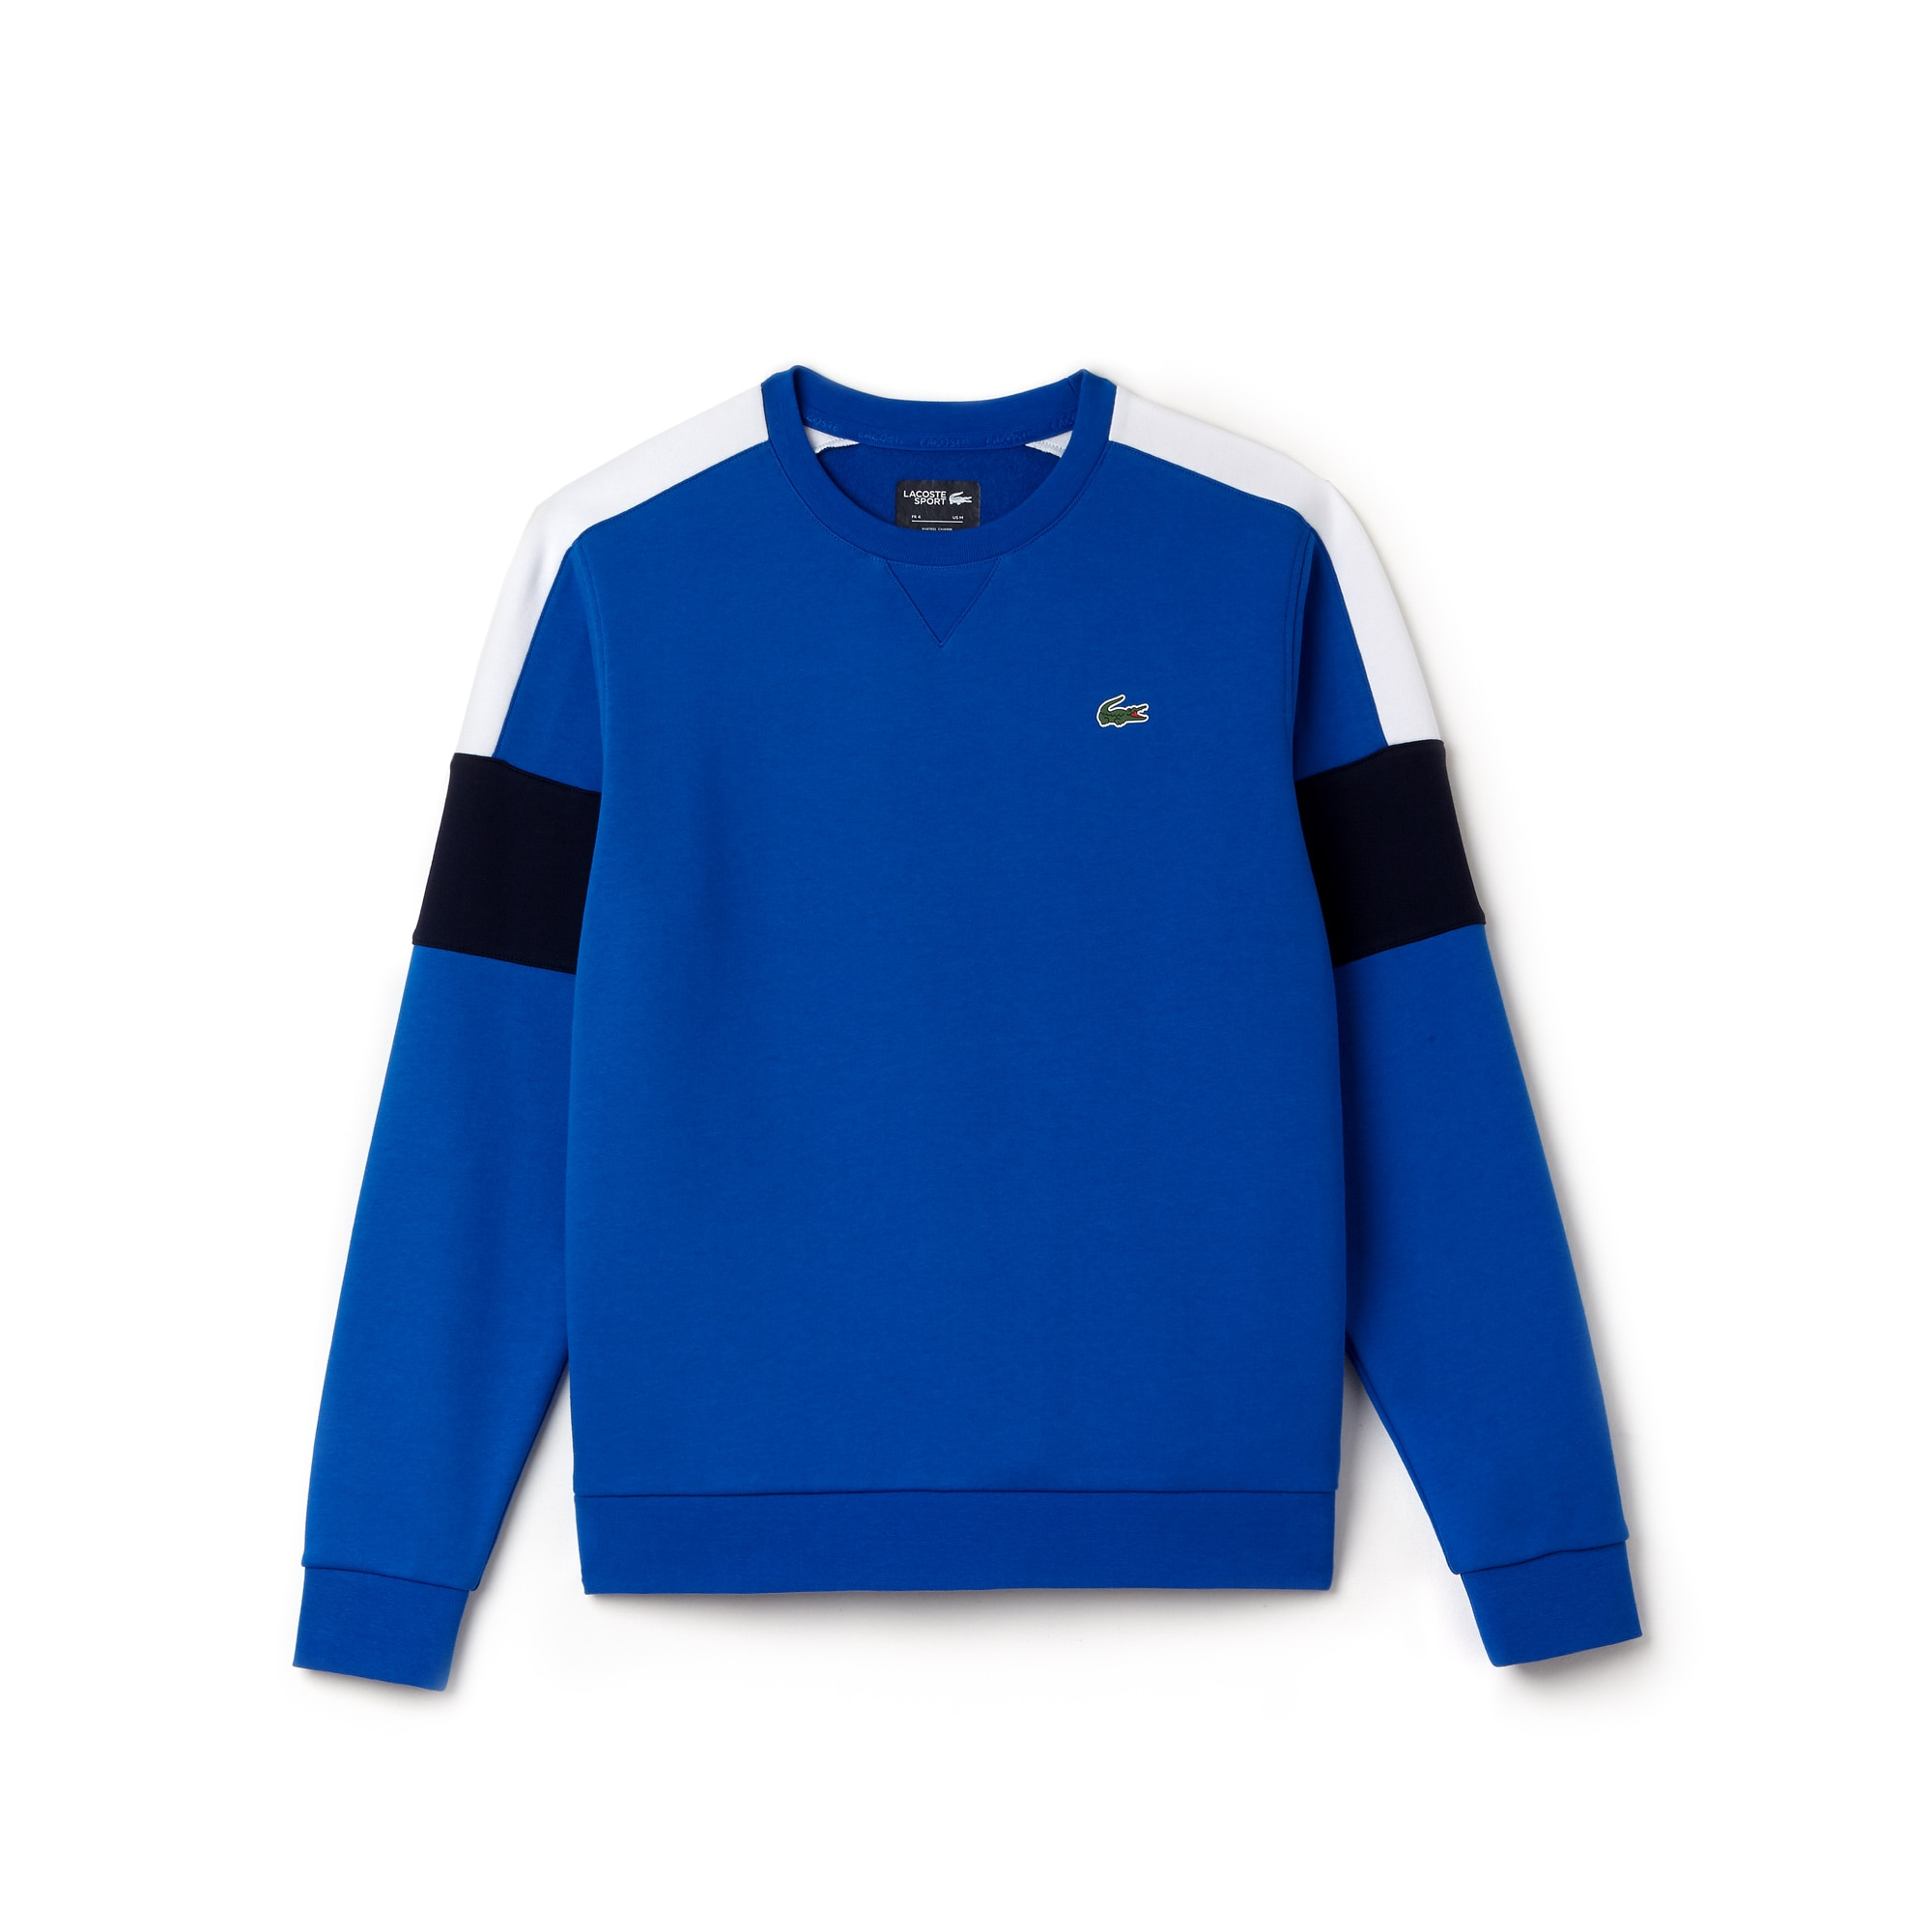 Herren LACOSTE SPORT Tennis Sweatshirt aus Fleece mit Colorblocks